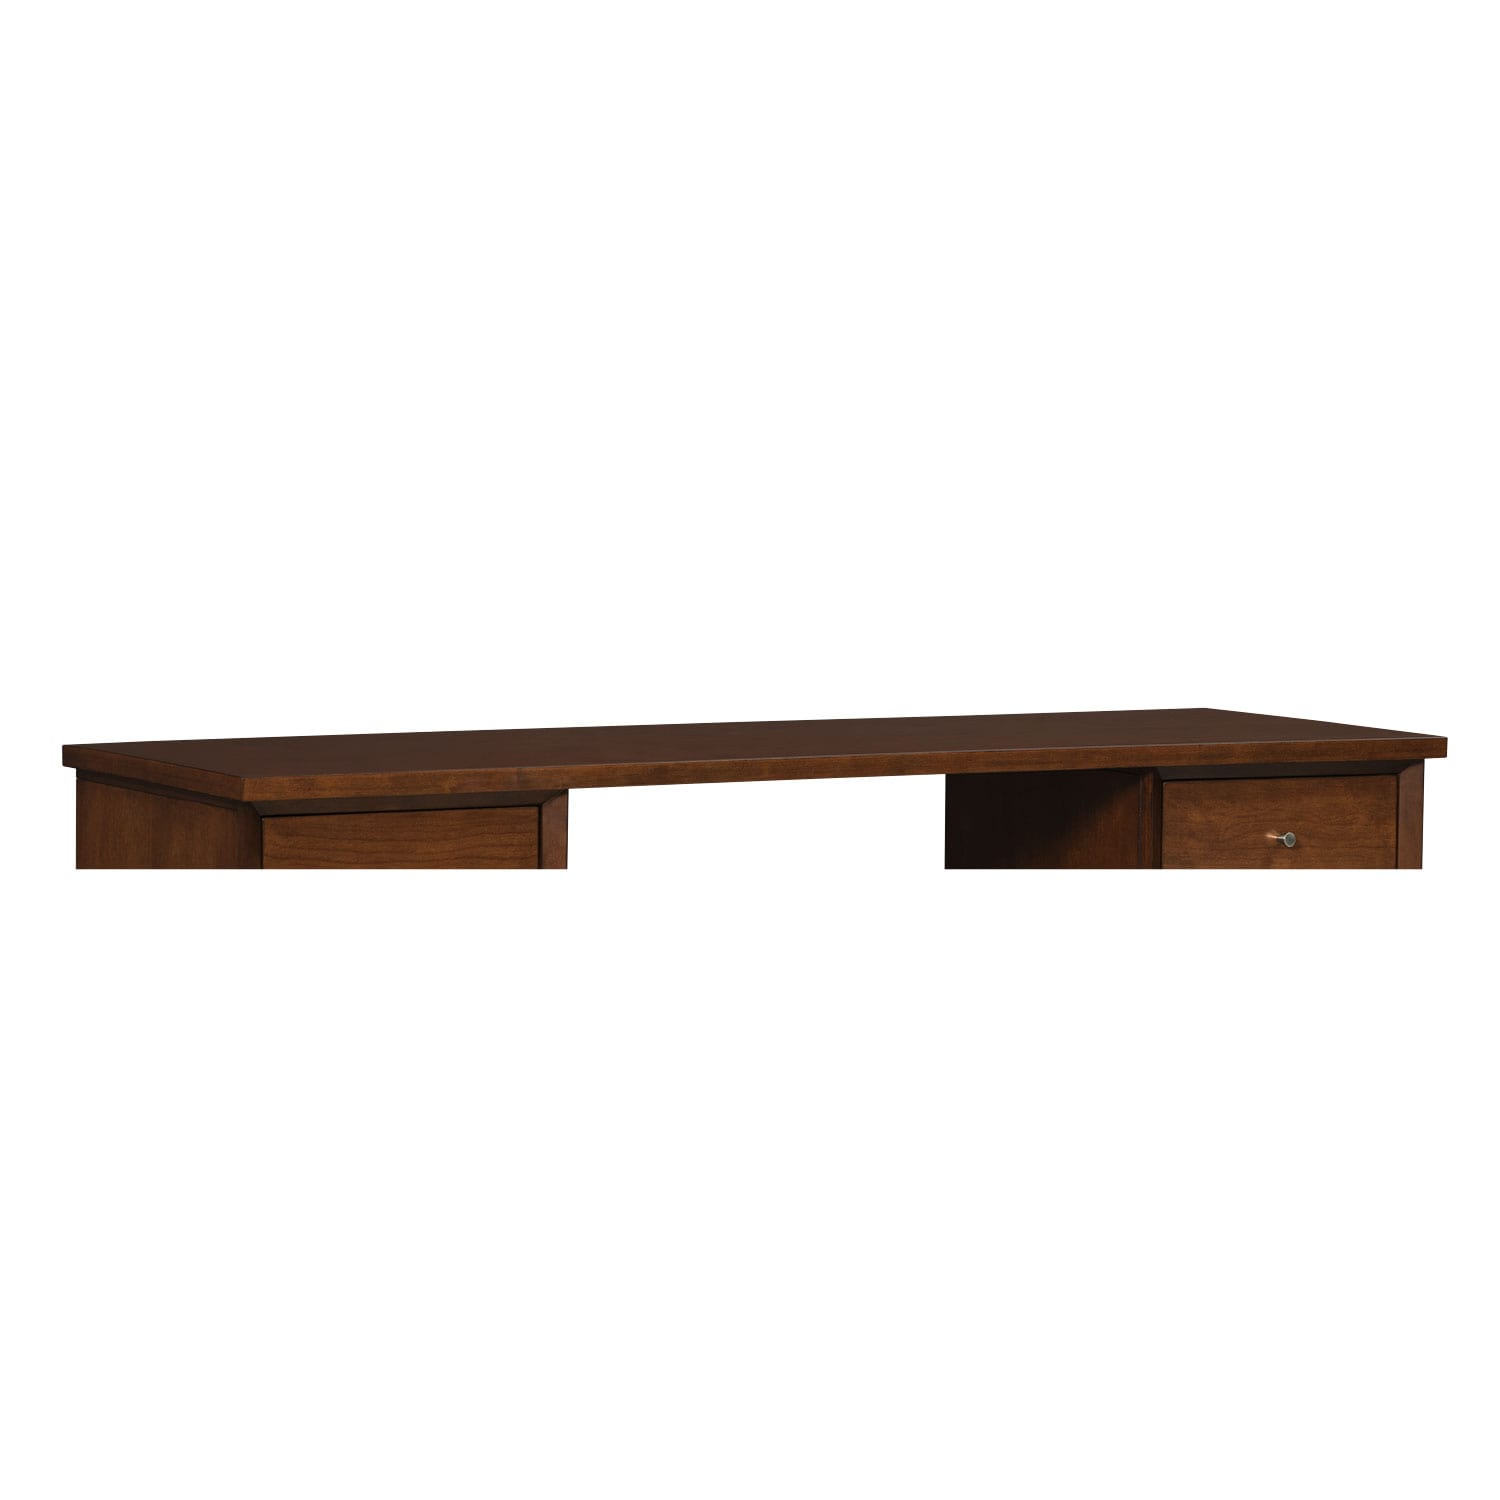 "Home Office Furniture - Oslo 65"" Desk Top - Cherry"